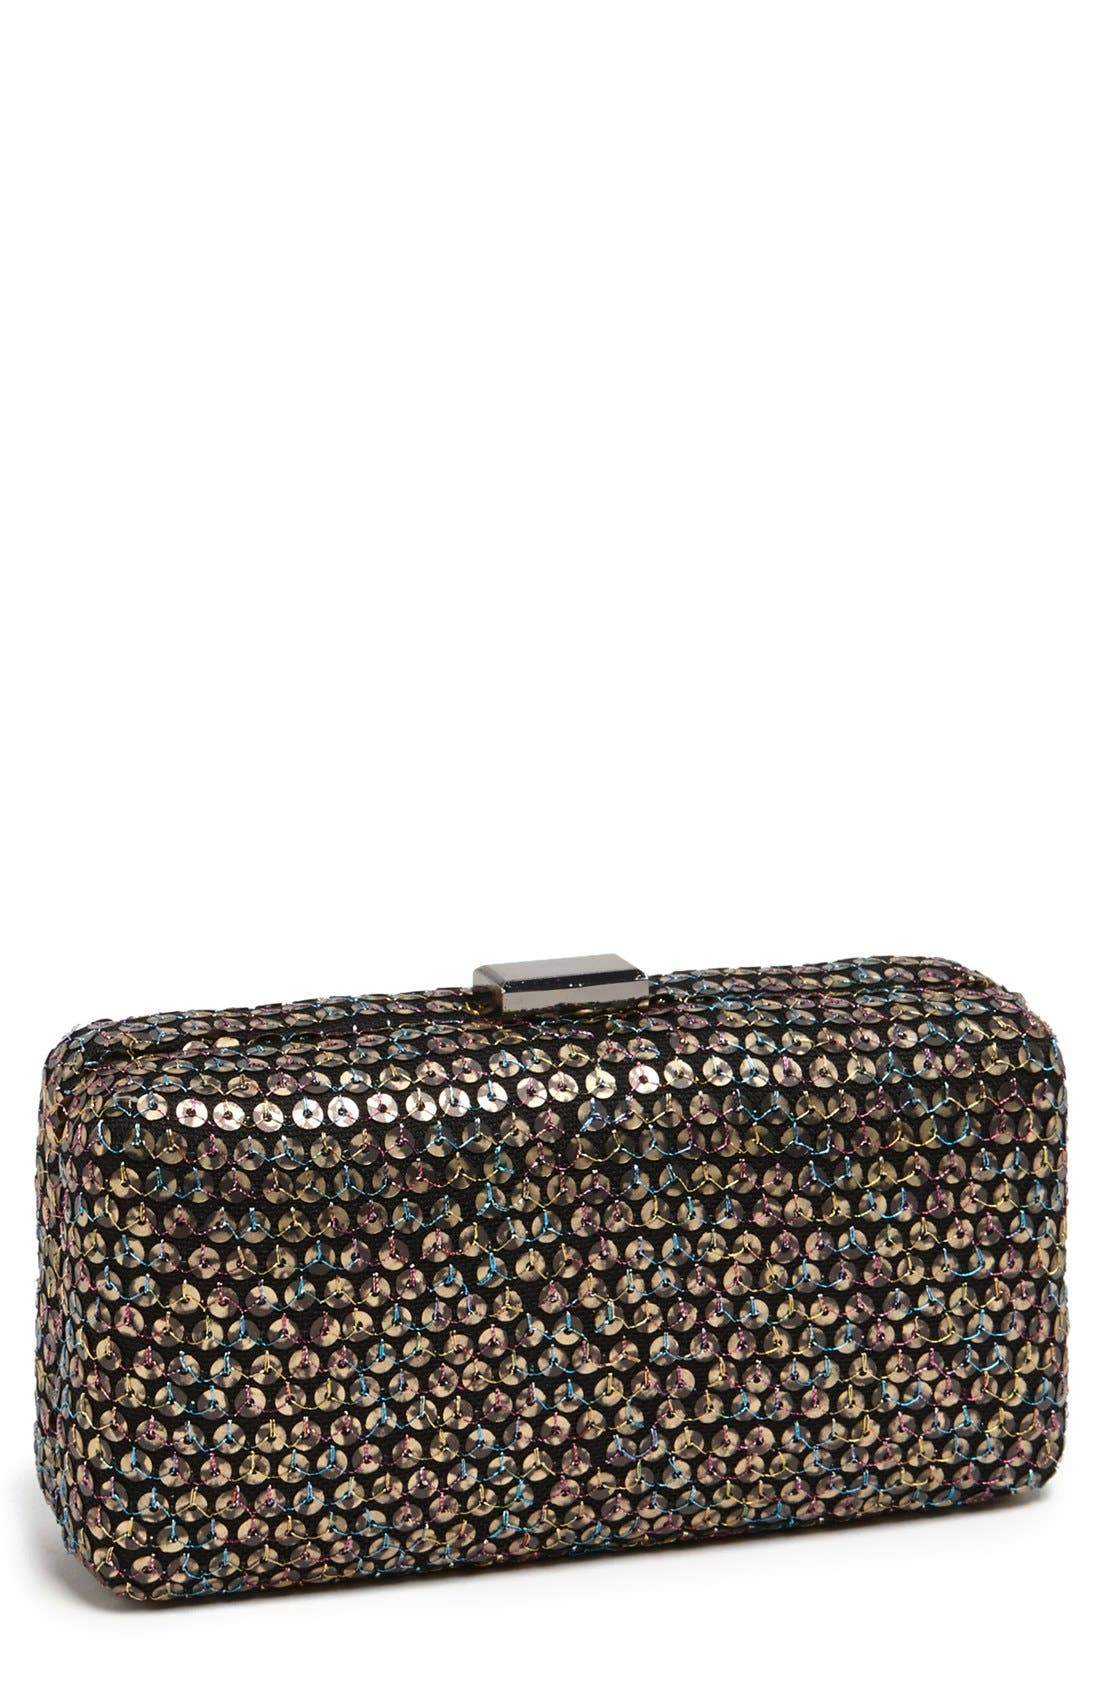 Alternate Image 1 Selected - Betsey Johnson Sequin Clutch